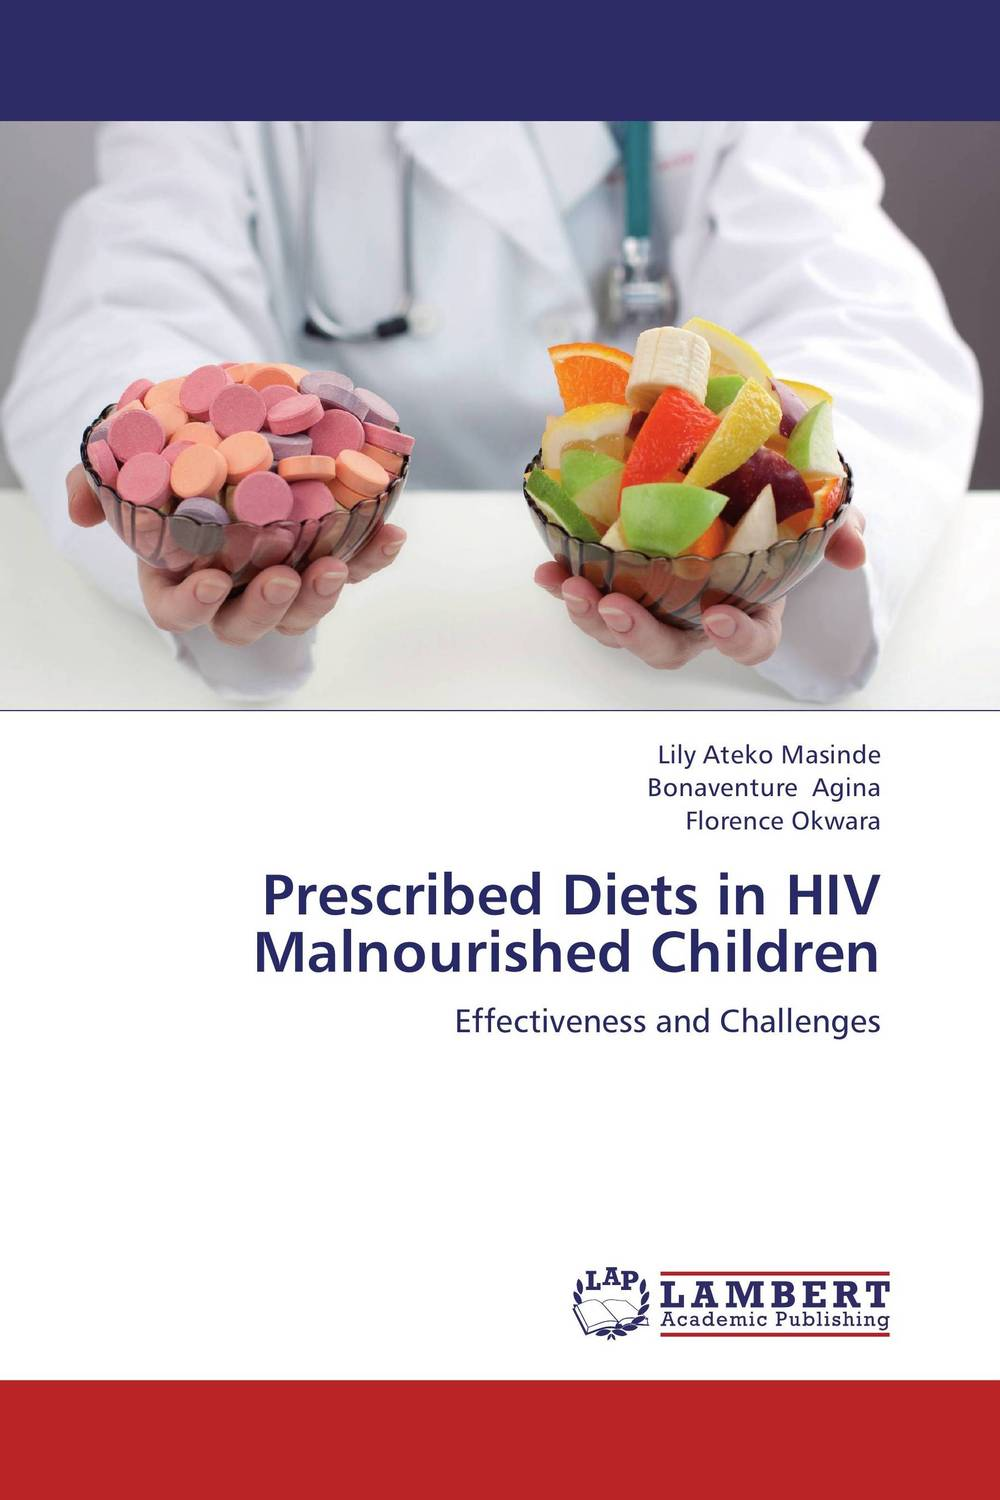 Prescribed Diets in HIV Malnourished Children marvin tolentino and angelo dullas subjective well being and farming experiences of filipino children